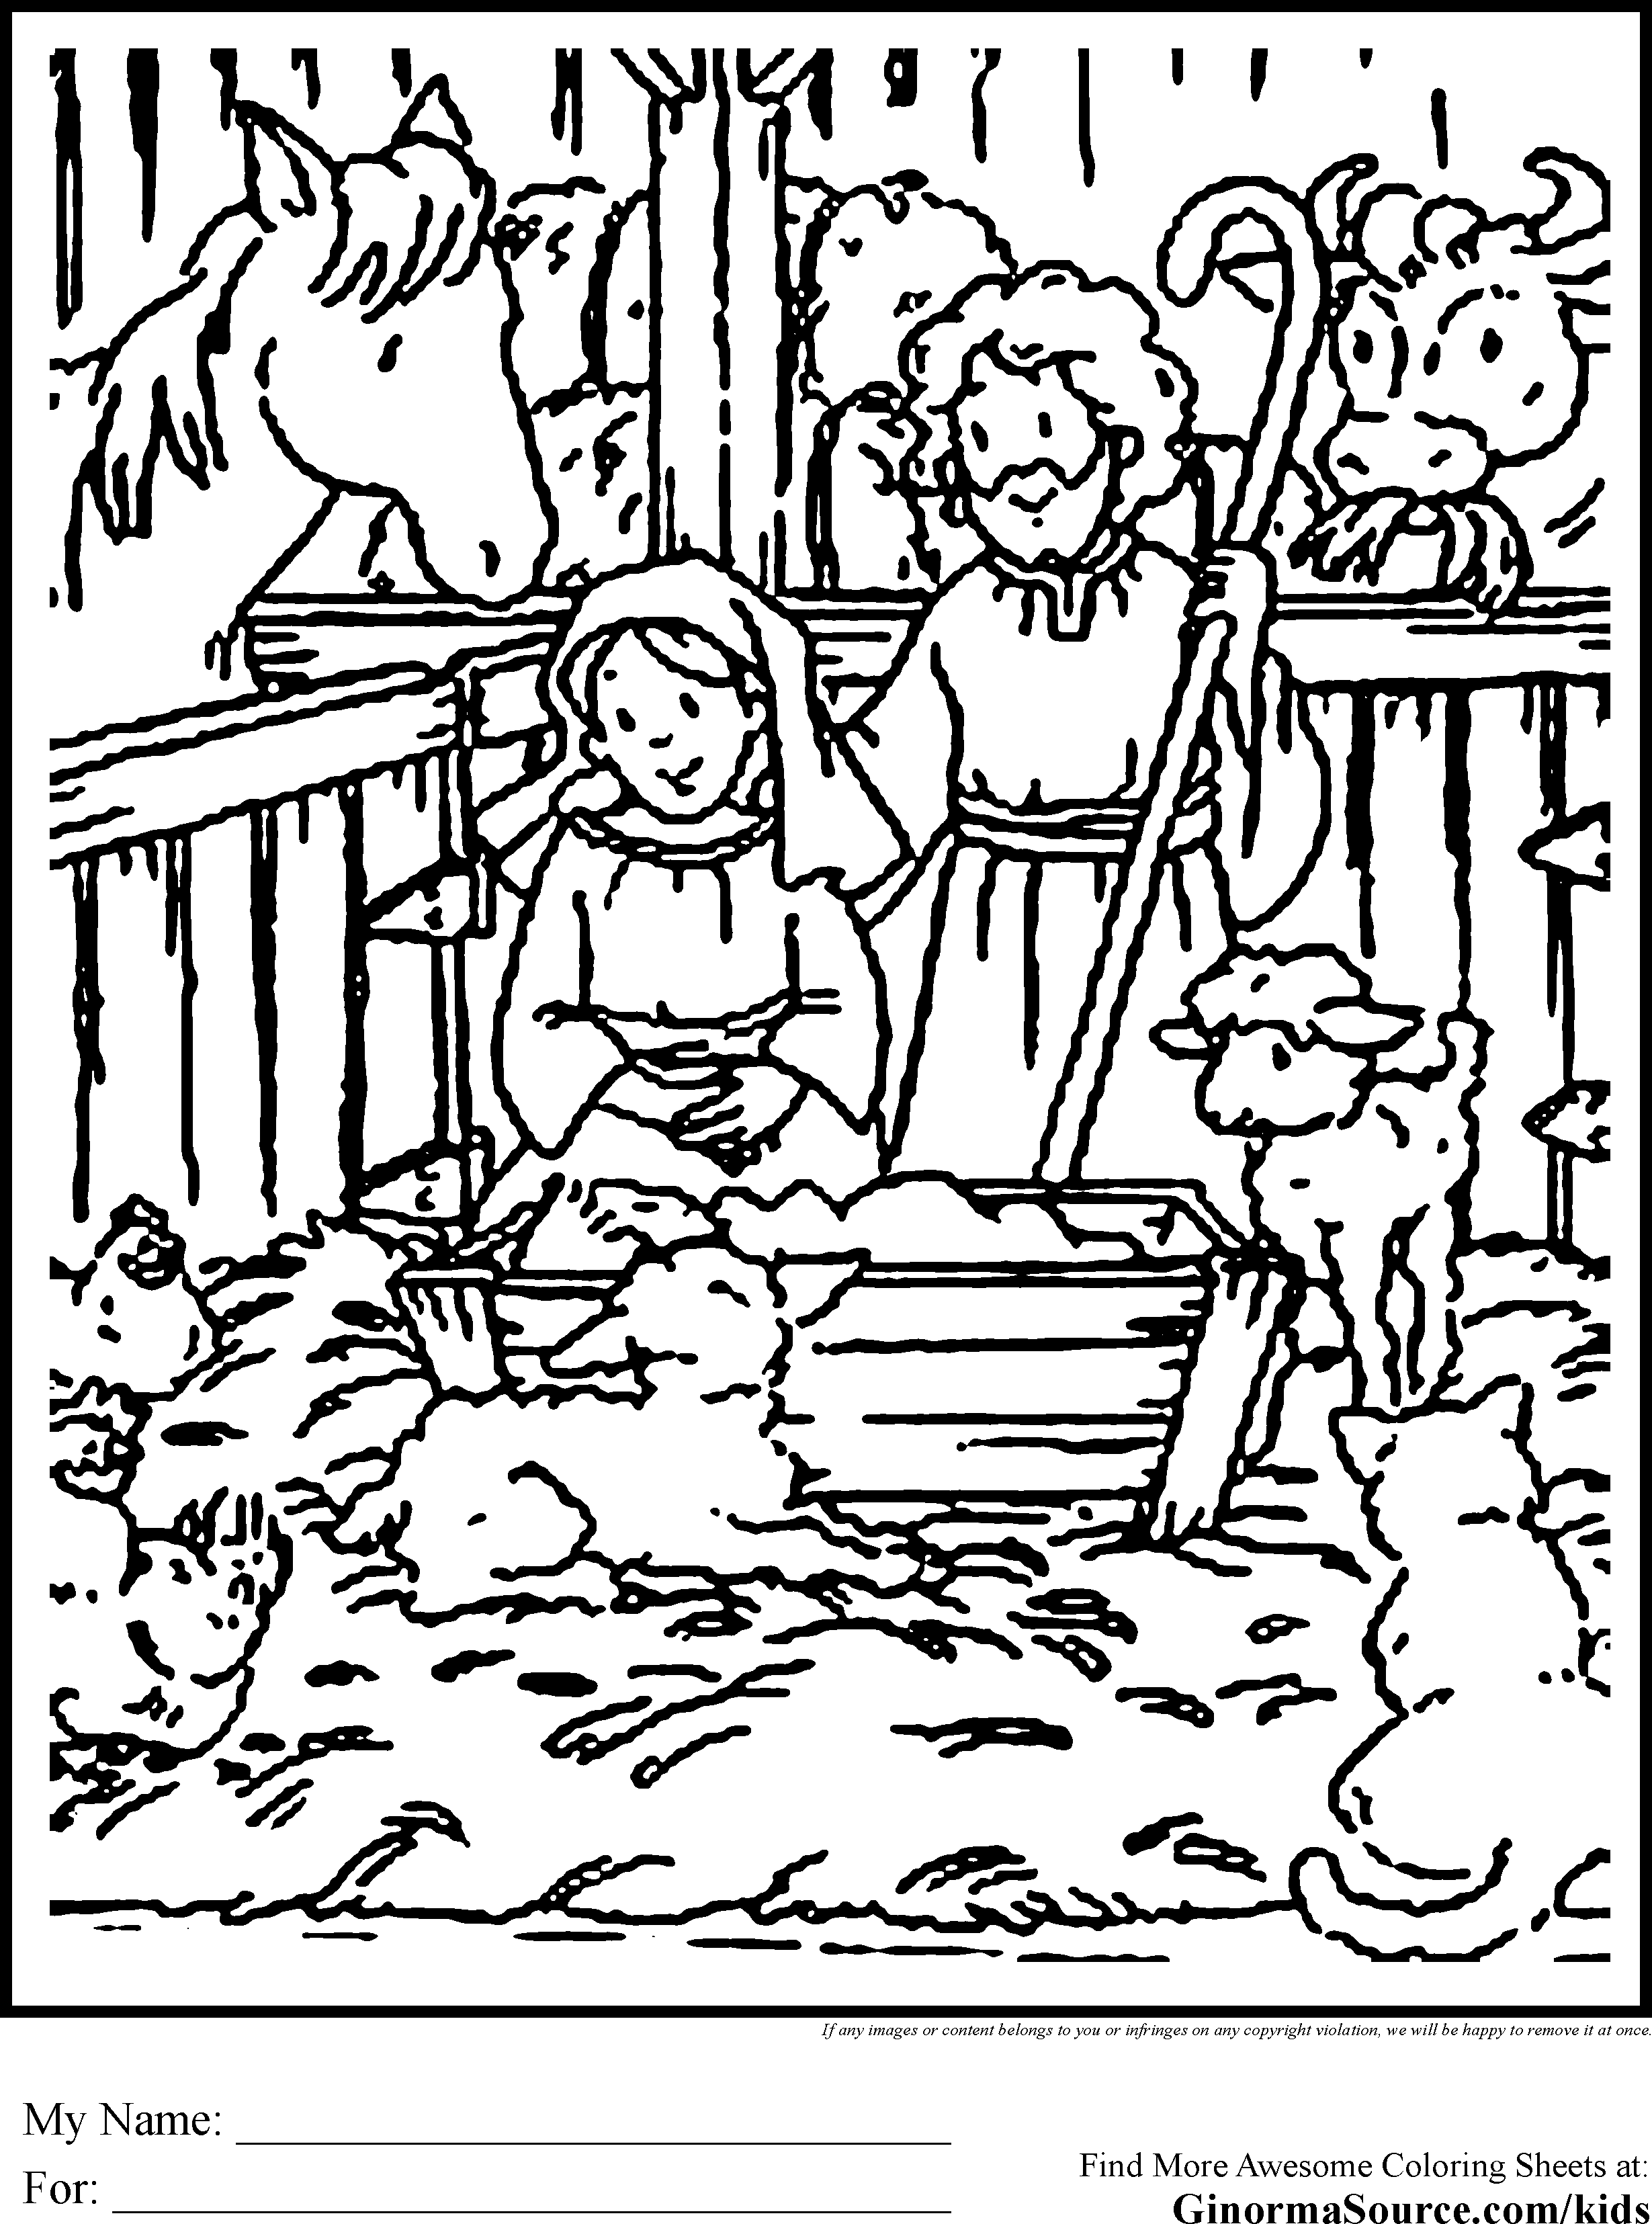 Adult Cute Mary And Joseph Coloring Pages Gallery Images top printable mary and joseph coloring pages now scene for all ages images